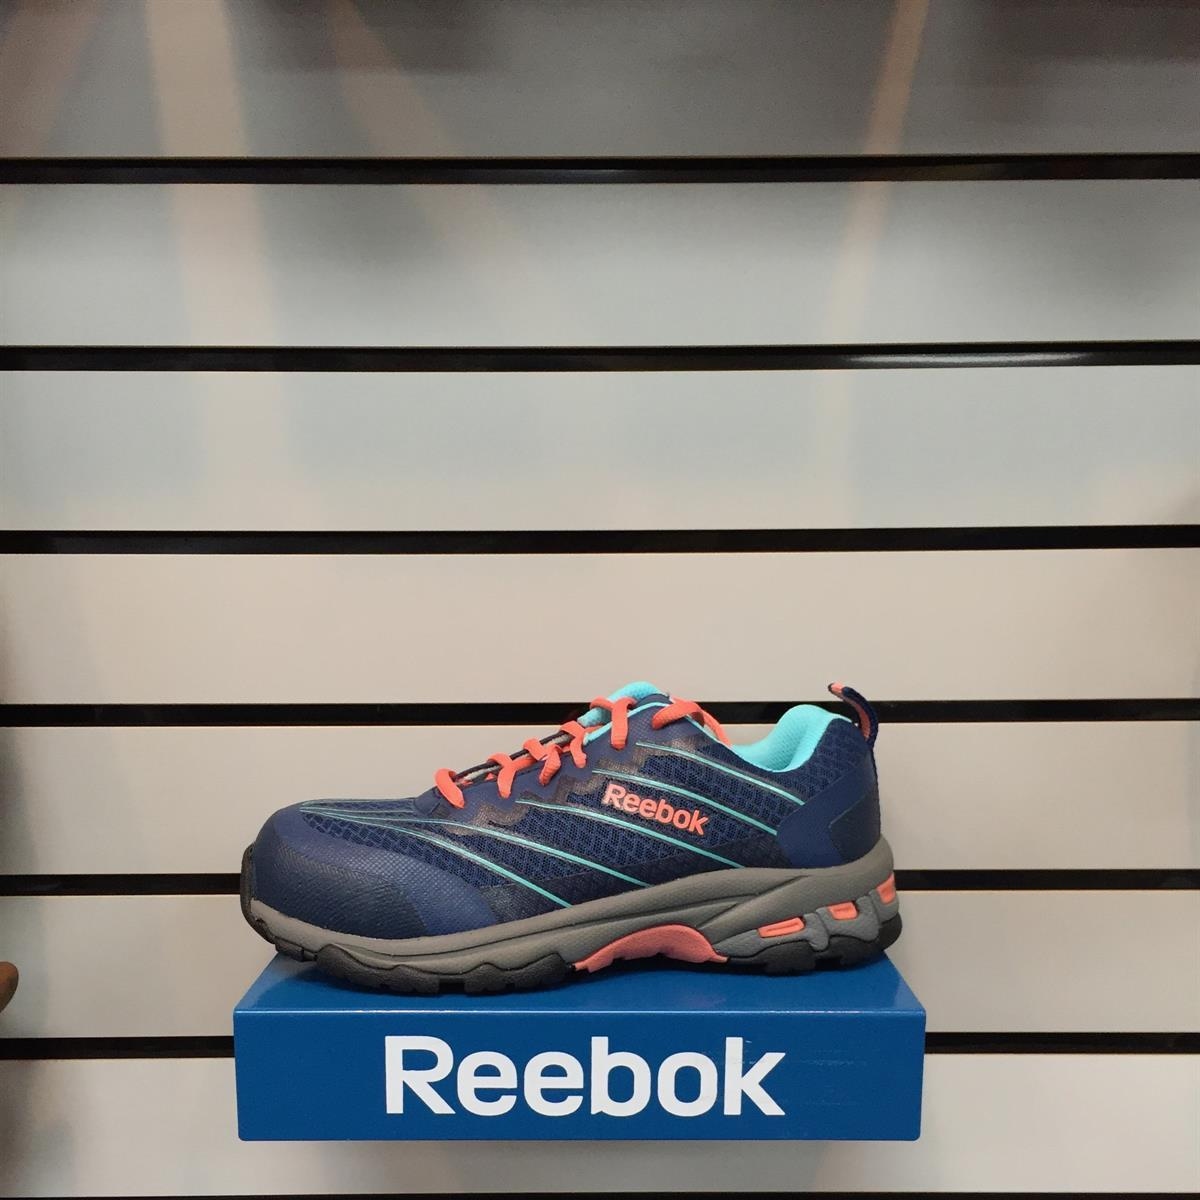 Reebok 426 safety toe girls